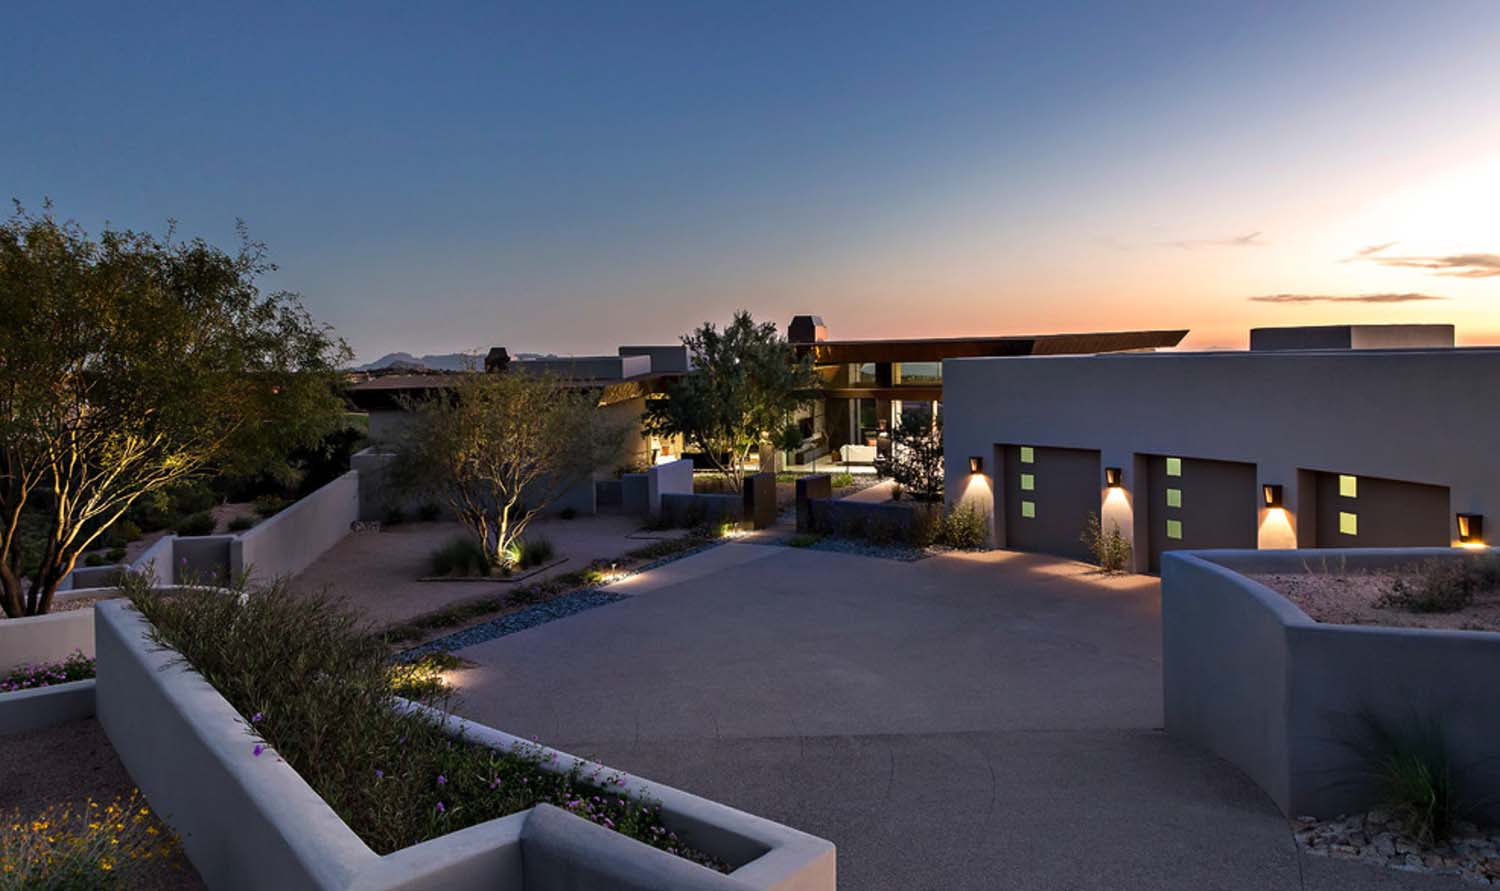 contemporary-desert-home-tate-studio-architects-29-1-kindesign